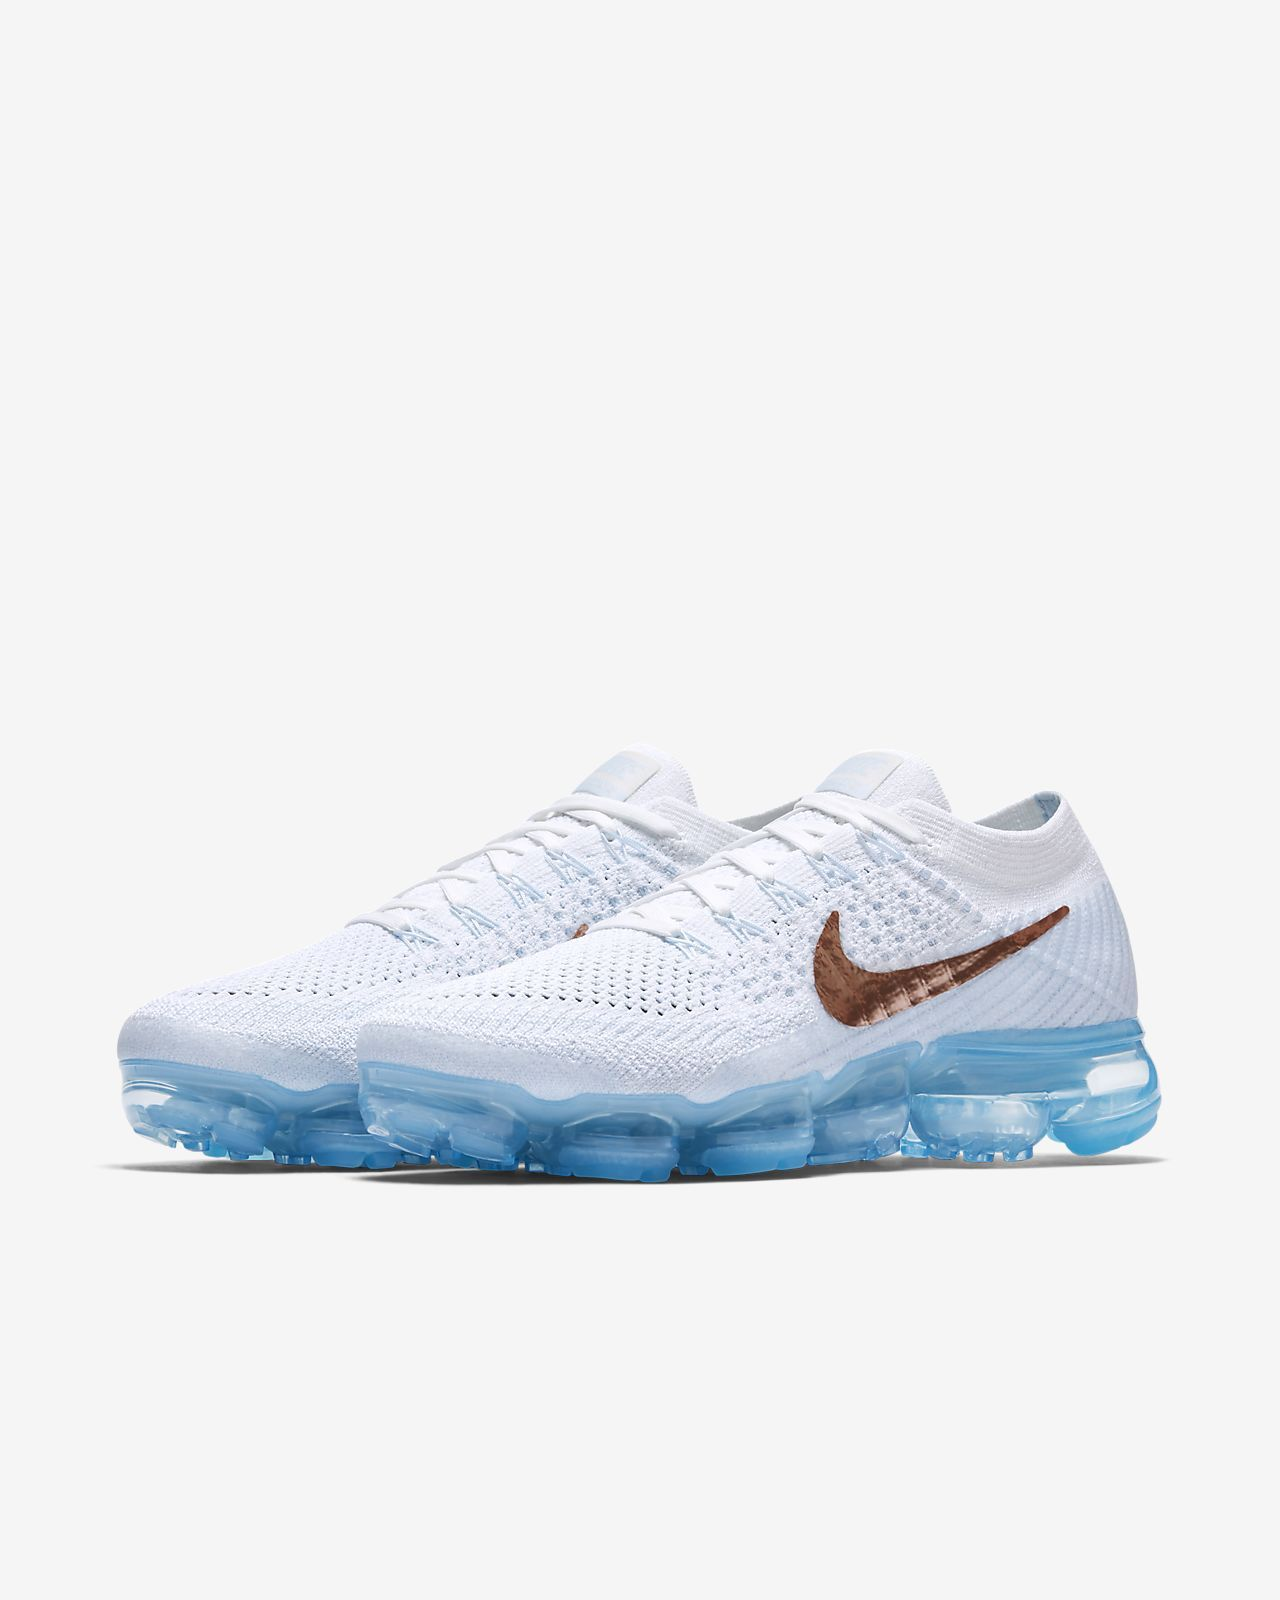 b8b7413289 Nike Air VaporMax Flyknit Explorer Women's Running Shoe | CHEWS ...